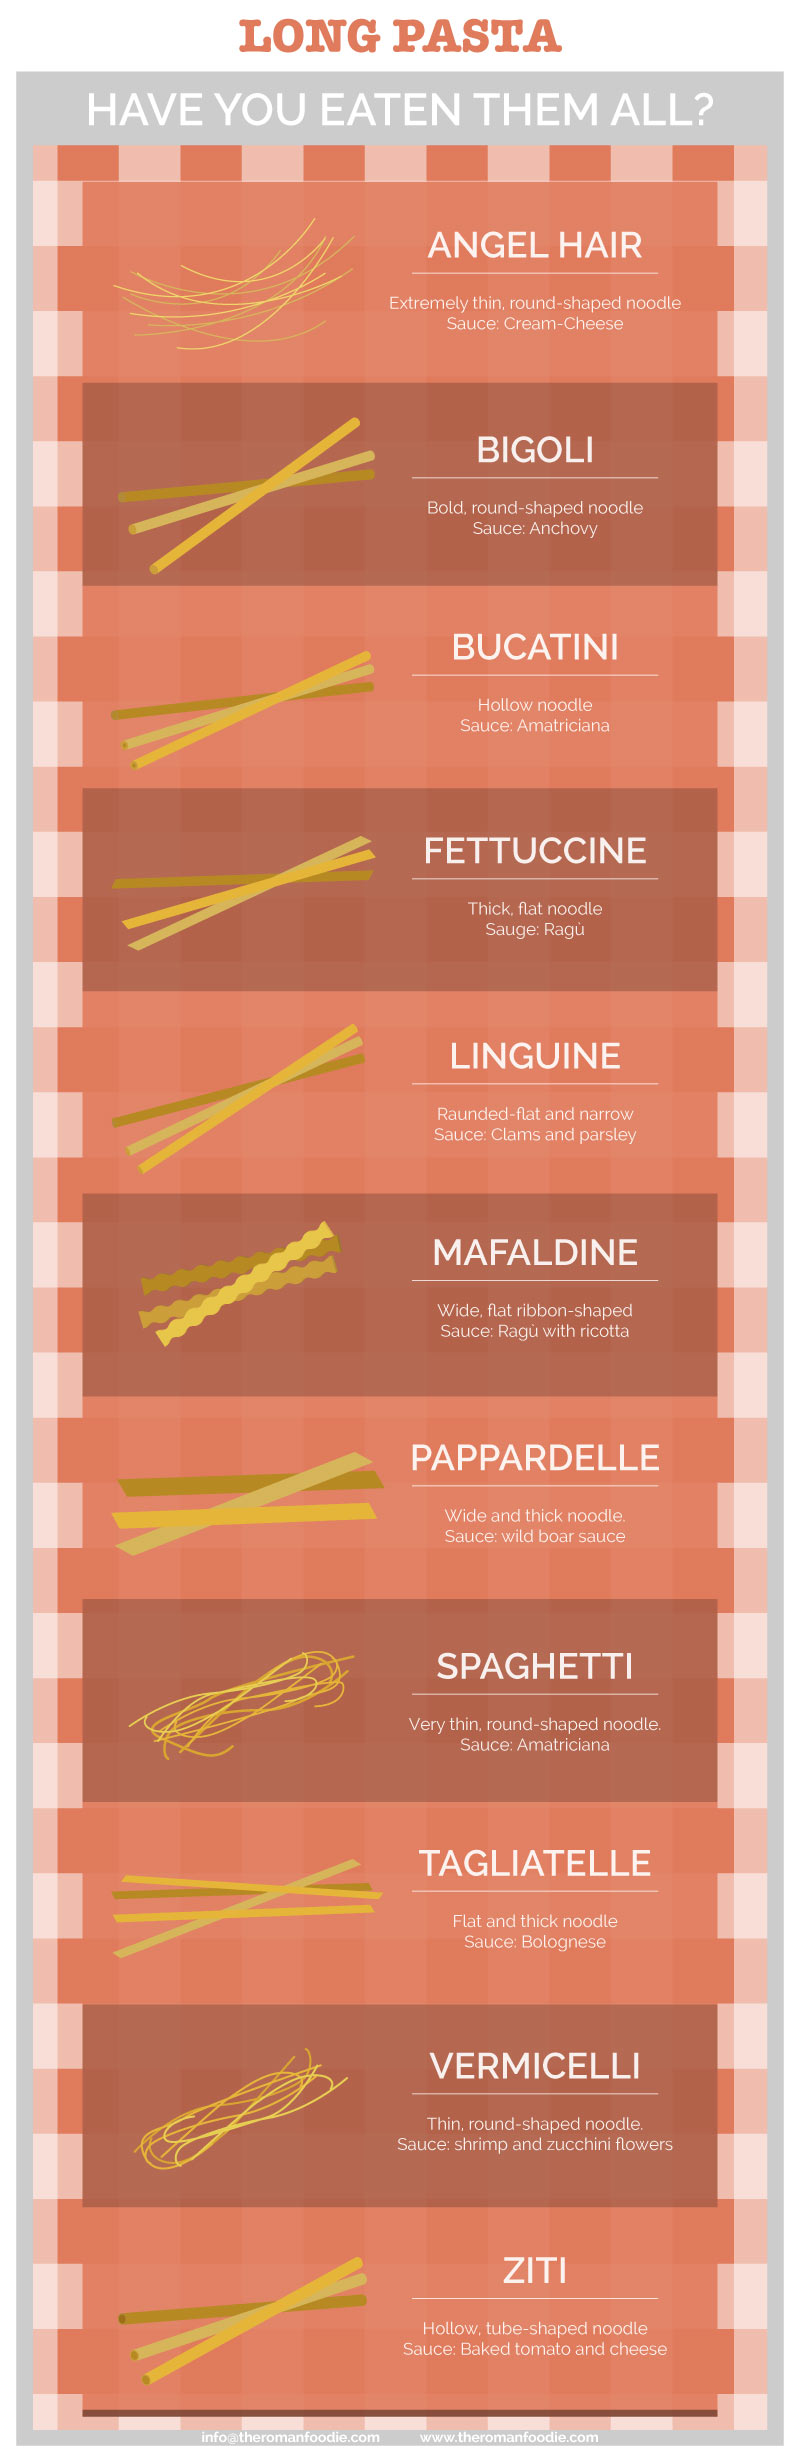 long pasta types infographic the roman foodie